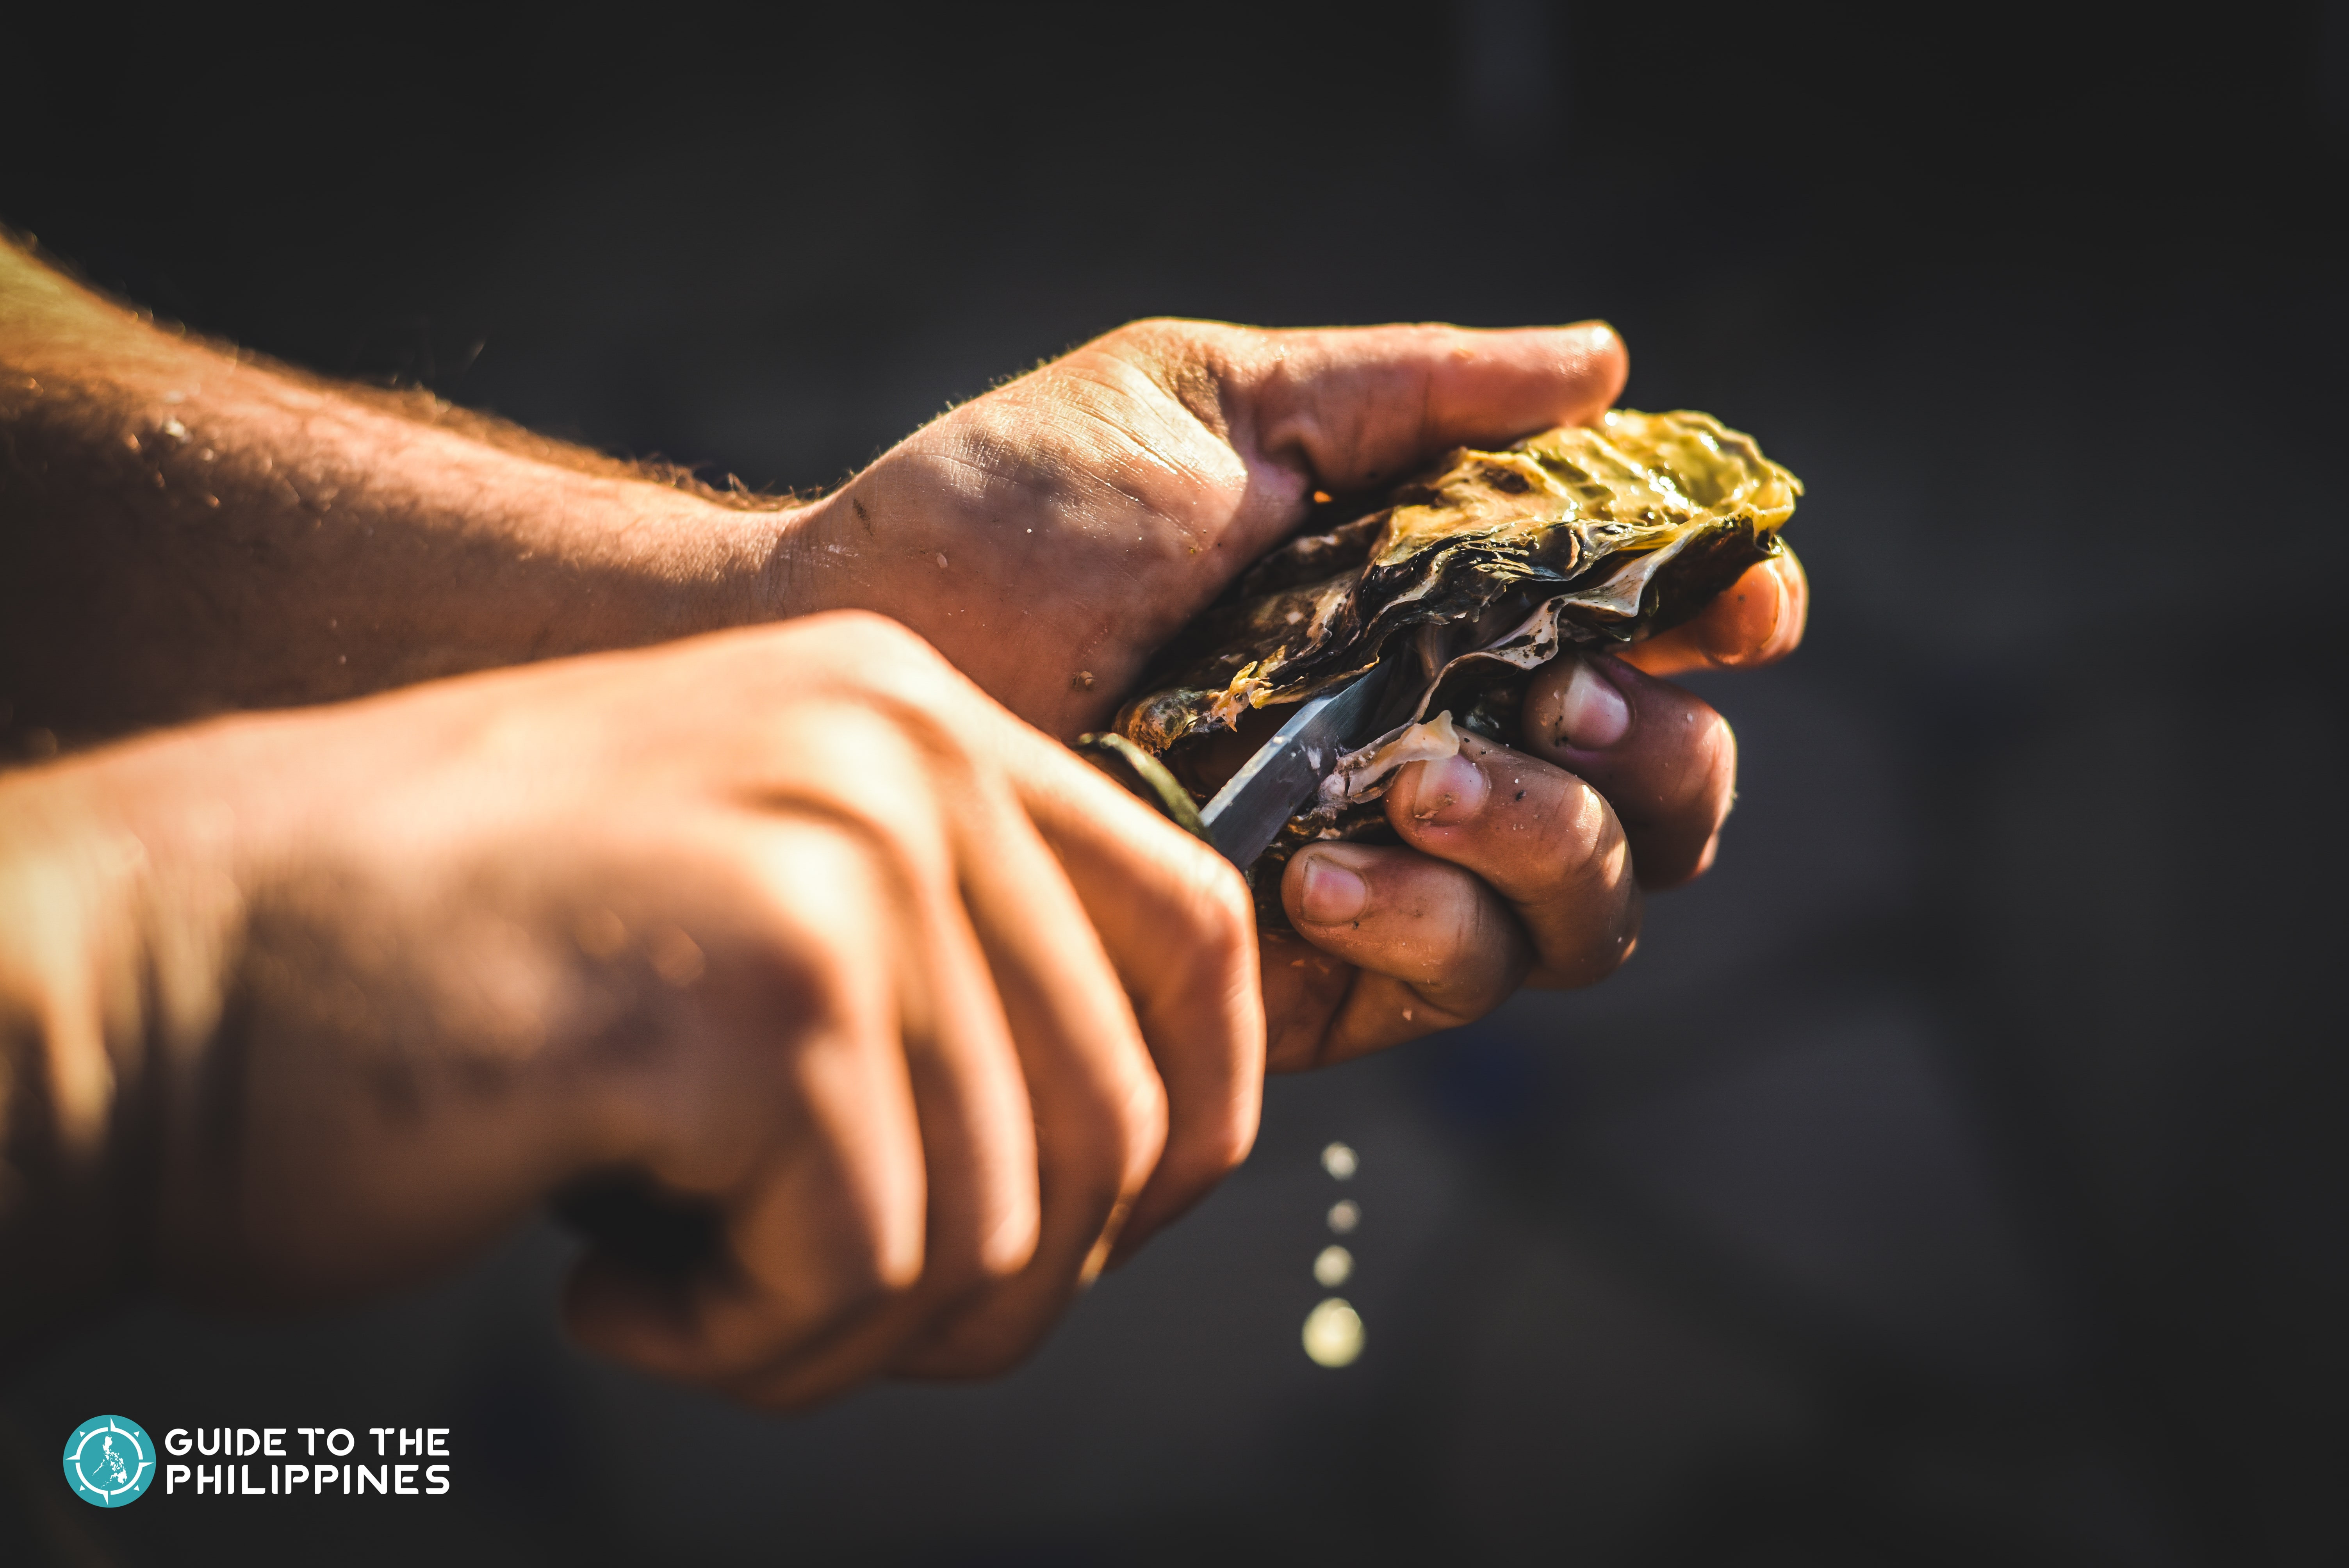 Shucking fresh oysters at Cambuhat Oyster Farm in Bohol